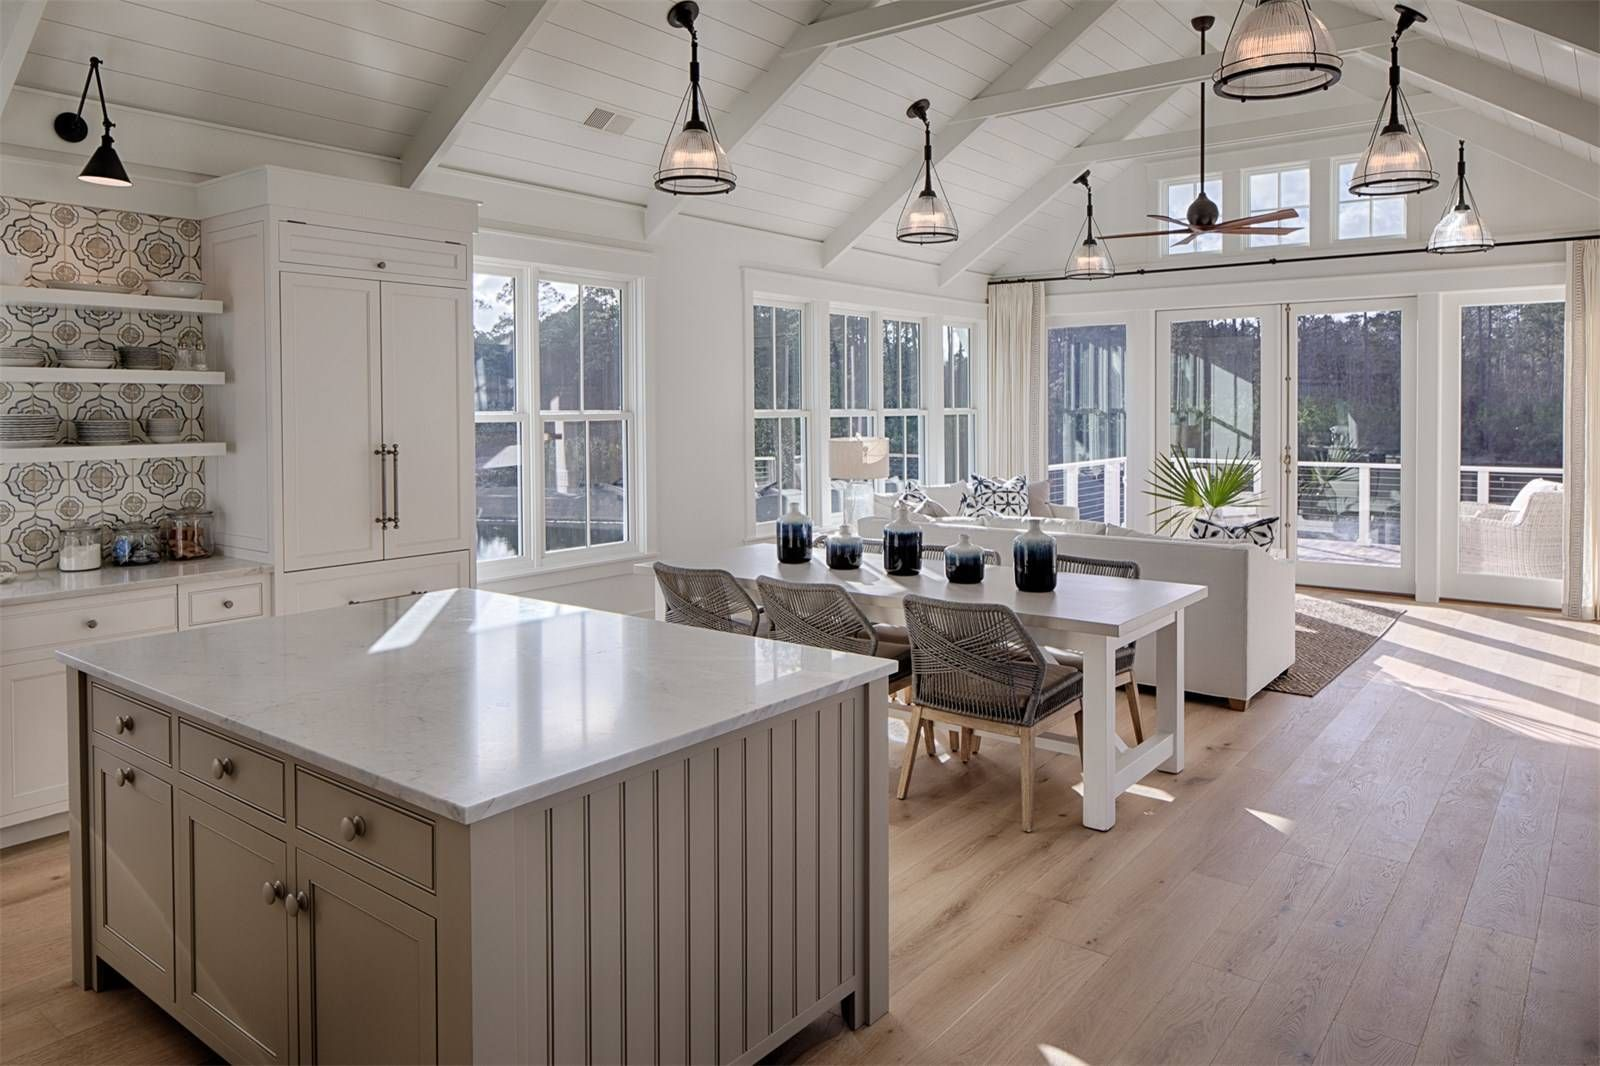 Modern Farmhouse Style Meets Coastal Cottage Decorating